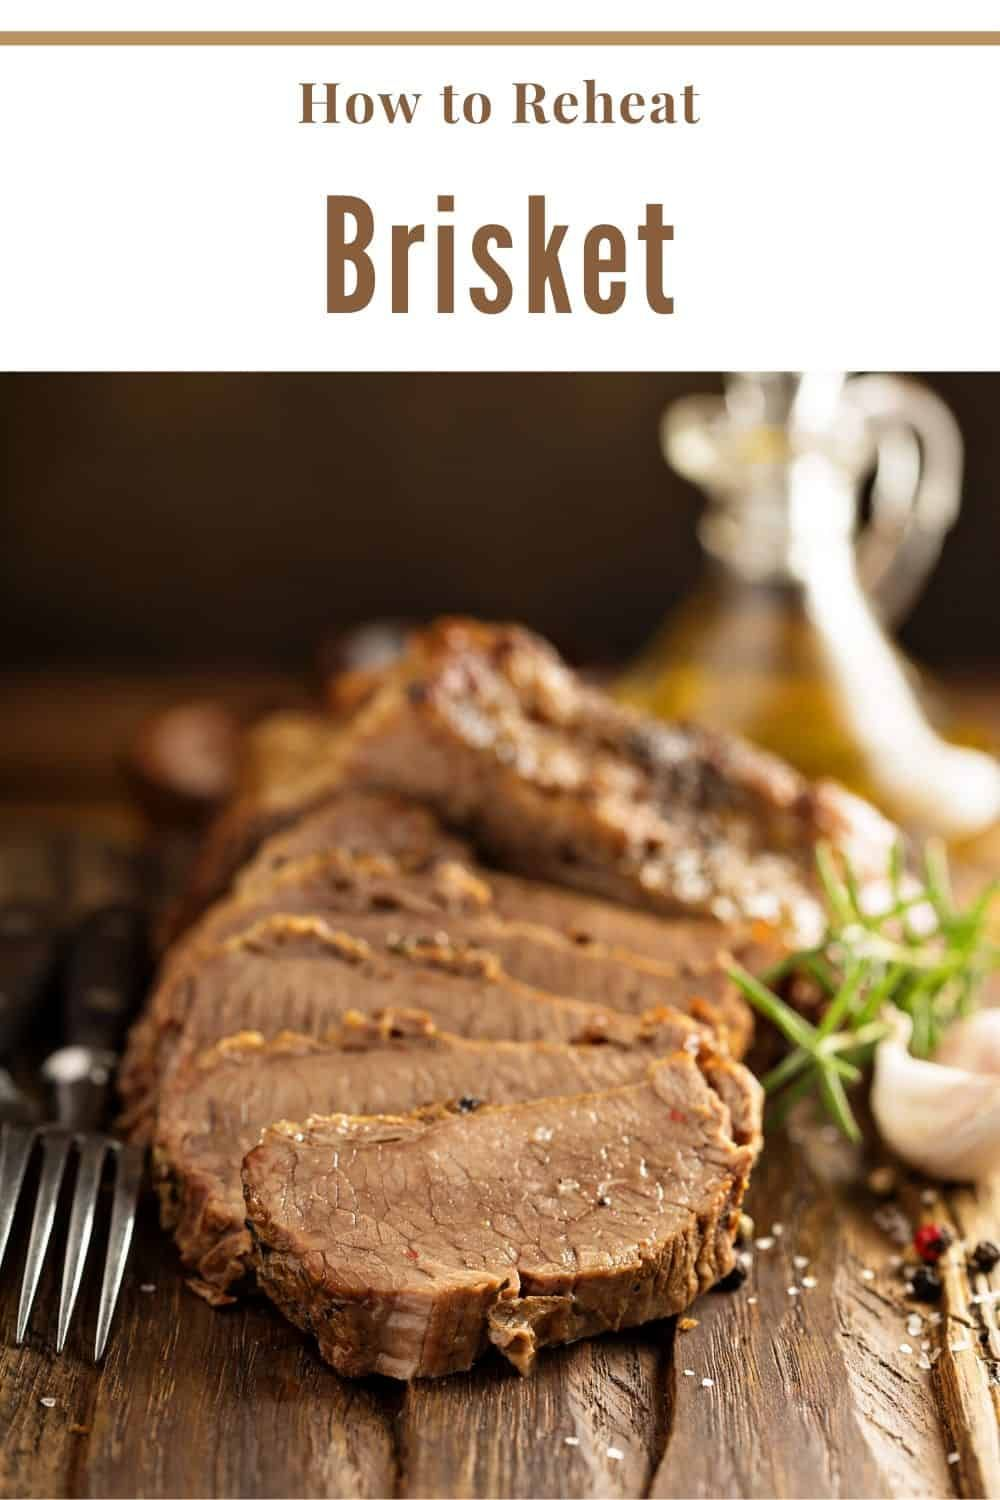 How To Reheat Brisket In 4 Easy Ways Without Drying It Out Recipe Brisket Oven Brisket Recipes Brisket Recipes